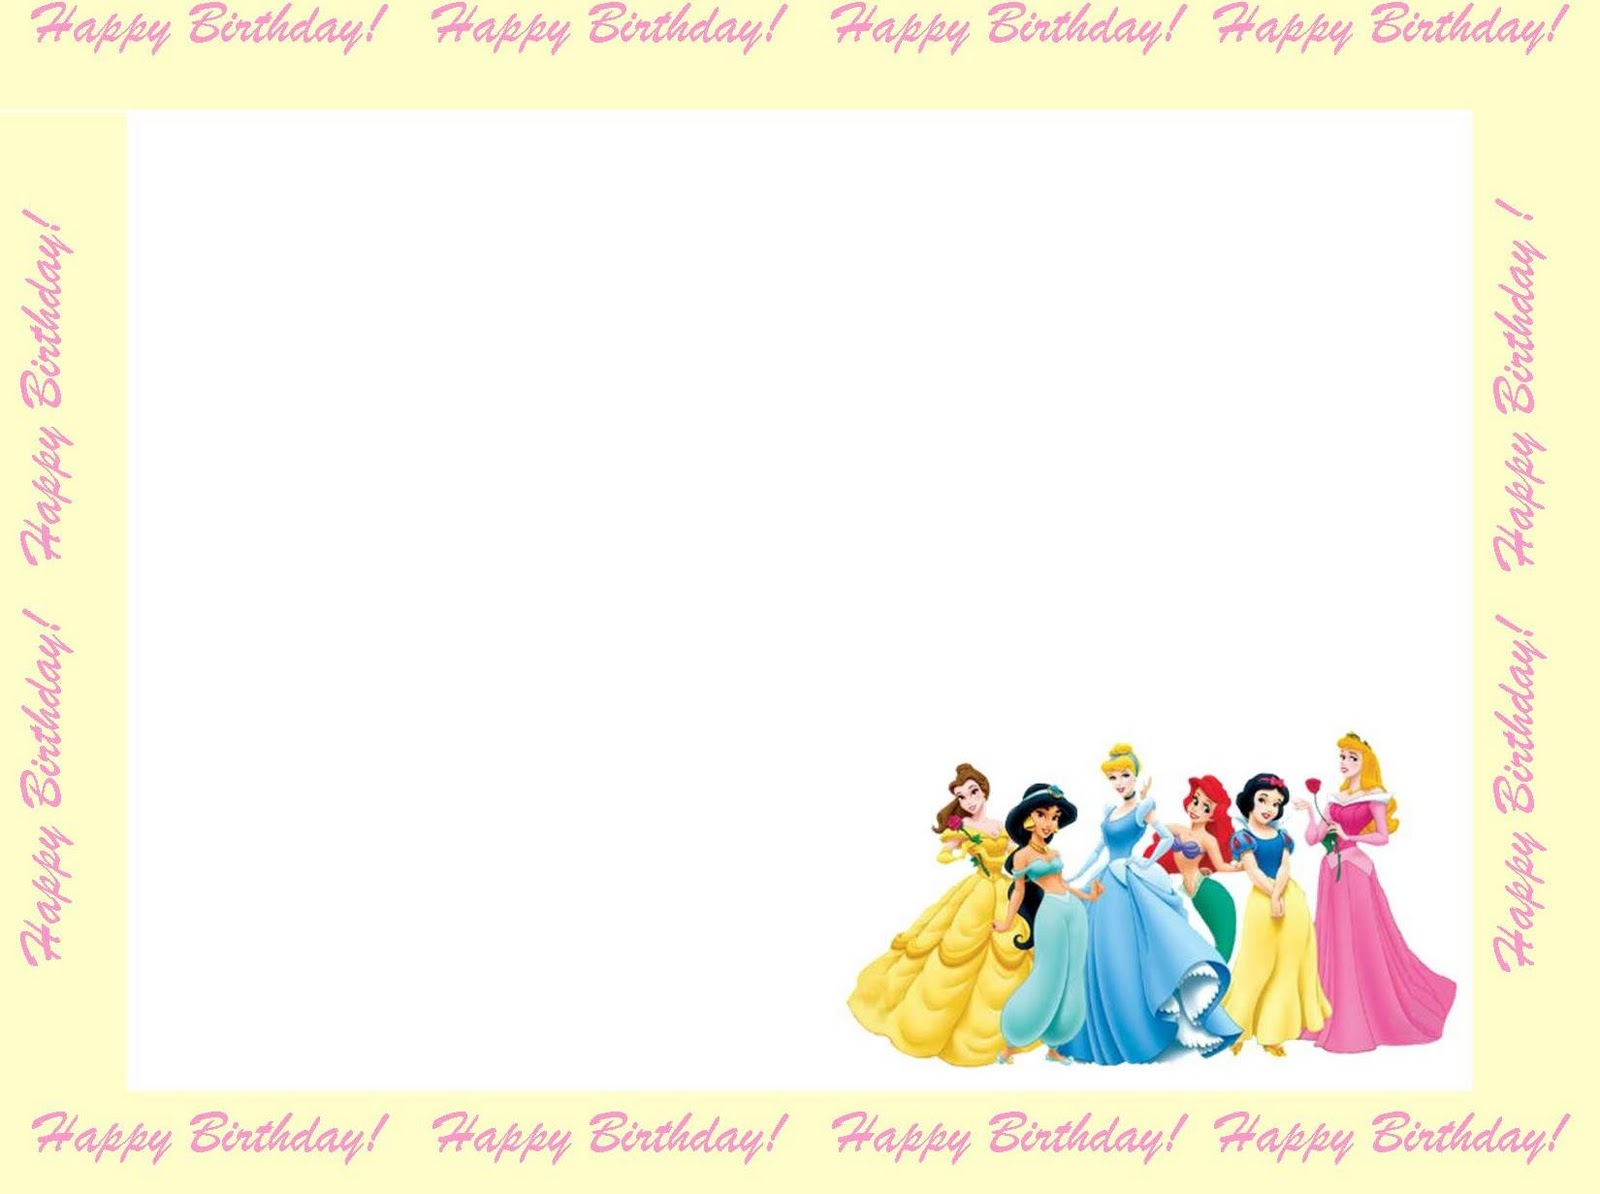 birthday border template free ; 9f66e5d2ab18cc9e99f5fb2cd5354bf8